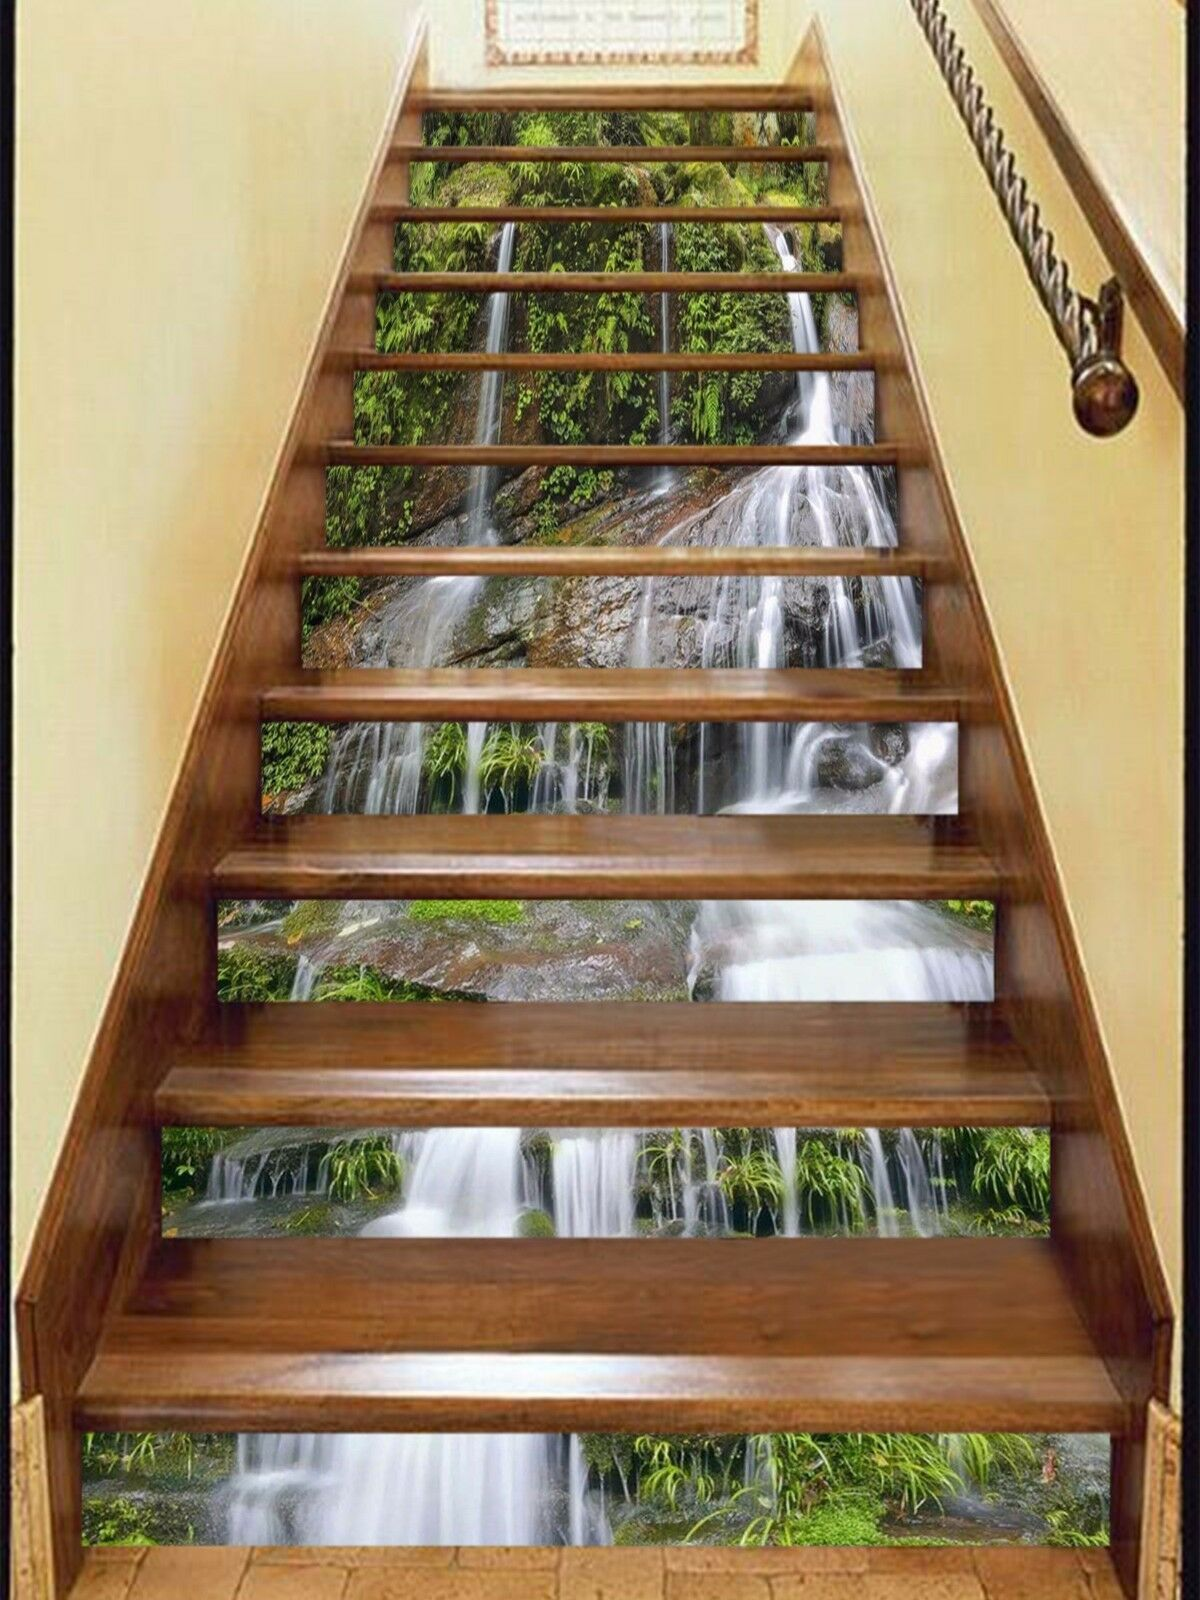 3D Cliff Streams 39 Stair Risers Decoration Photo Mural Vinyl Decal Wallpaper AU